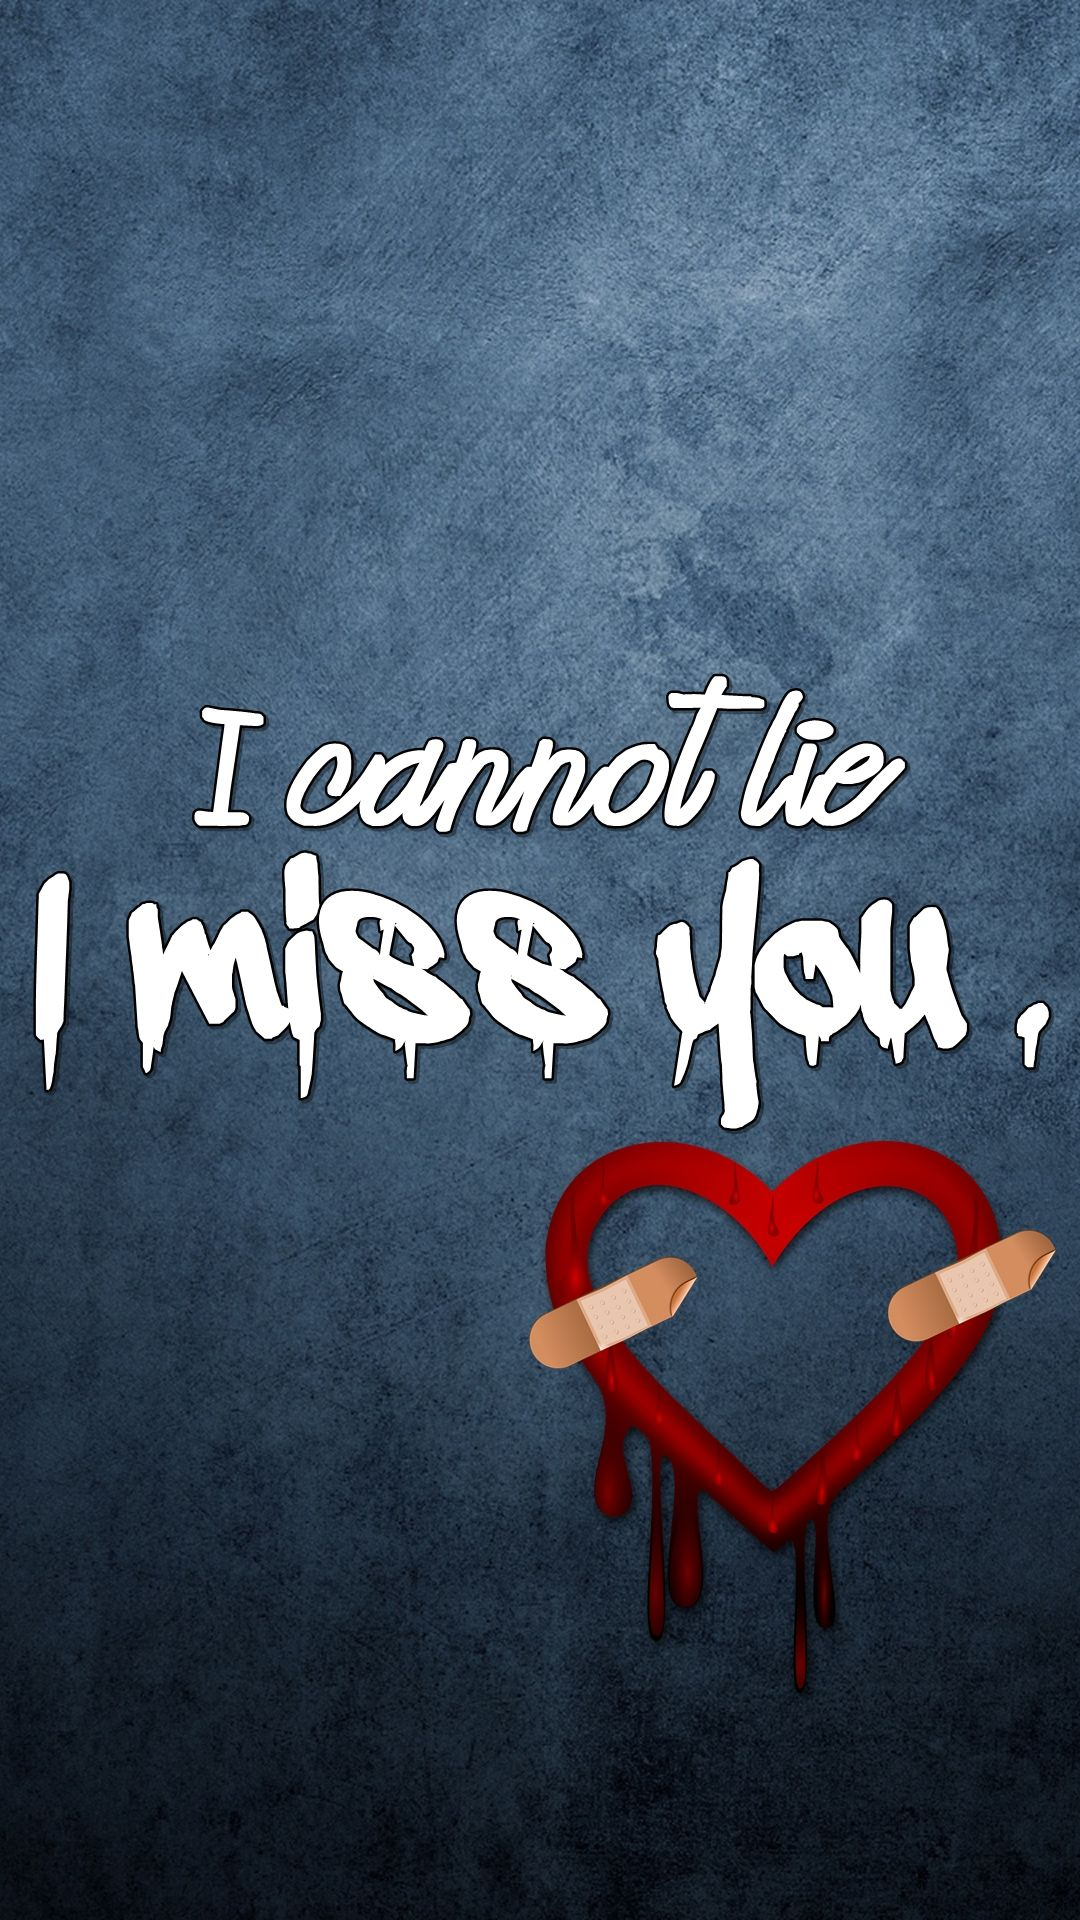 Samsung Quote I Cannot Lie I Miss You  Samsung Galaxy S5 Wallpapers